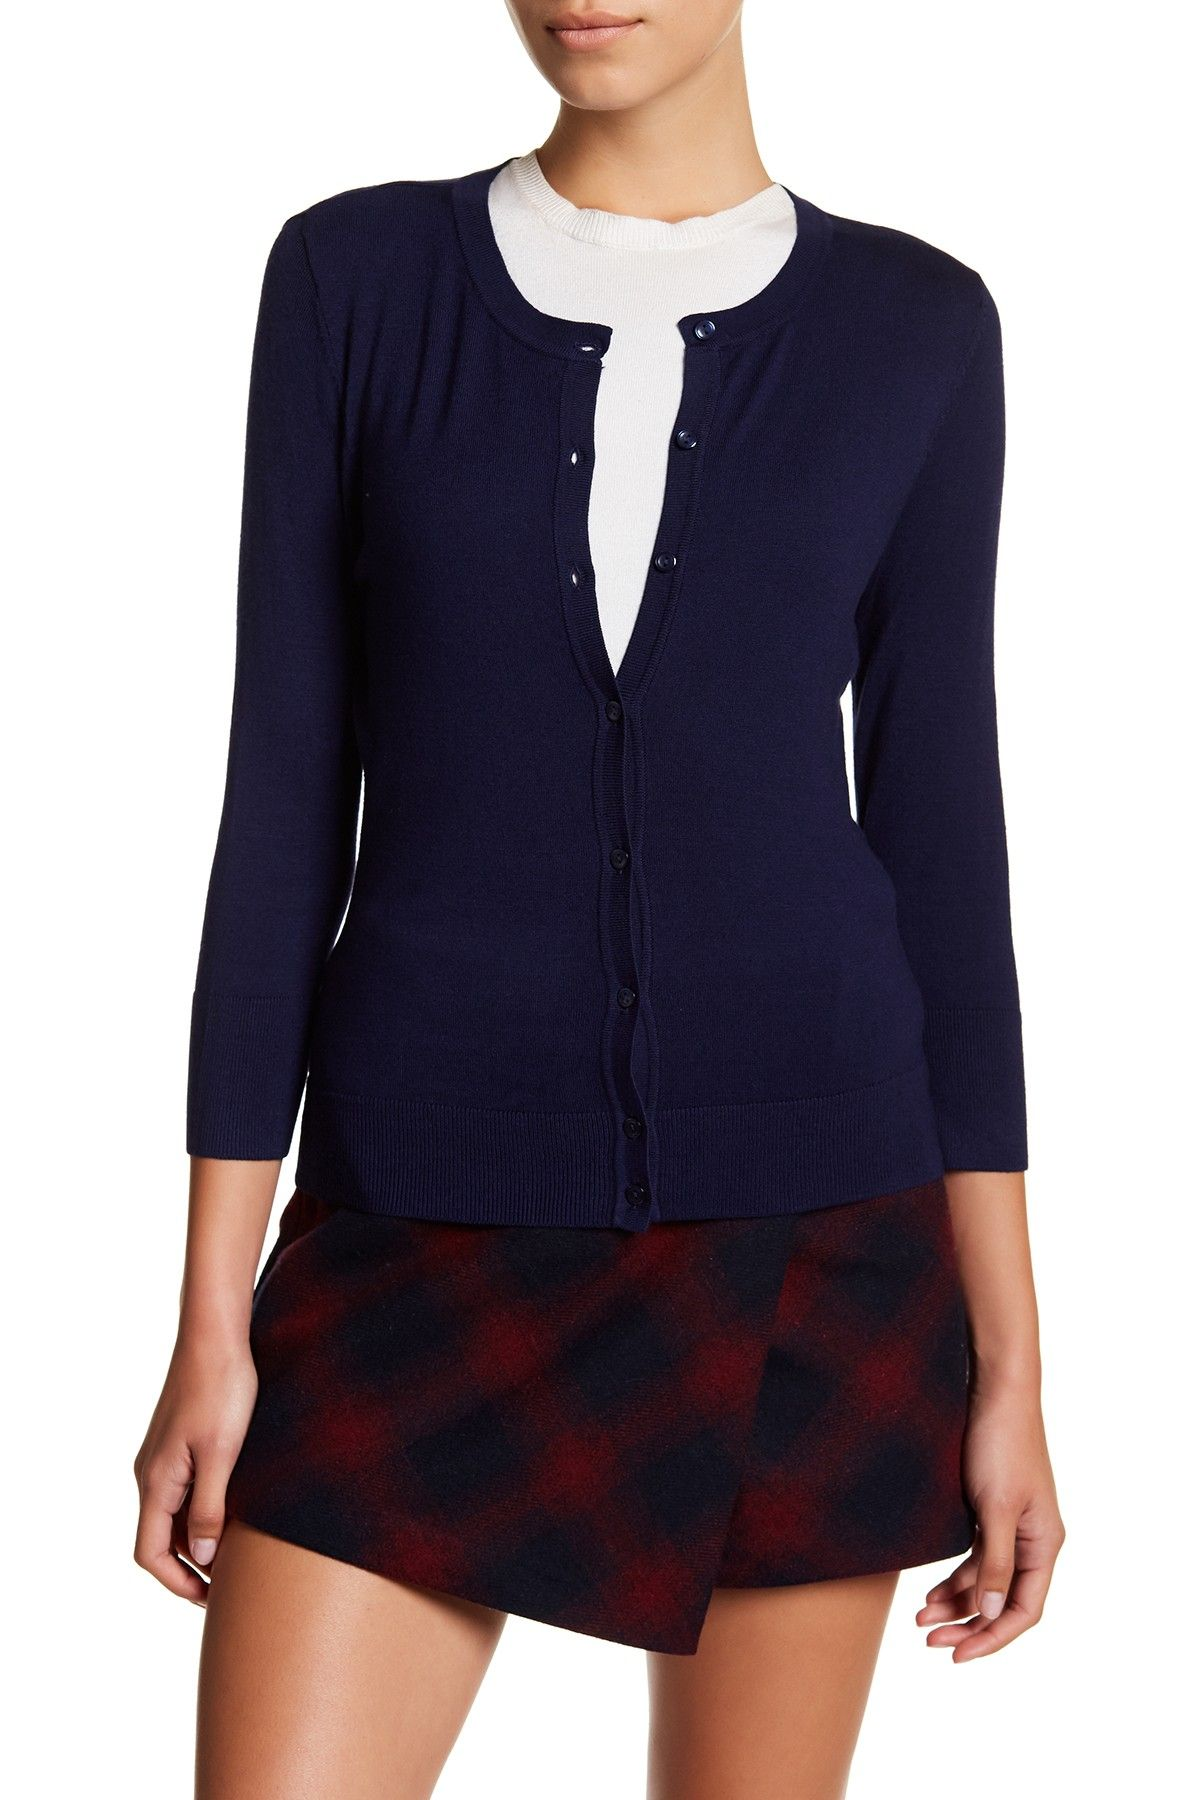 1e620d73a95 3 4 Sleeve Crew Neck Cardigan (Regular   Petite) by SUSINA on   nordstrom rack